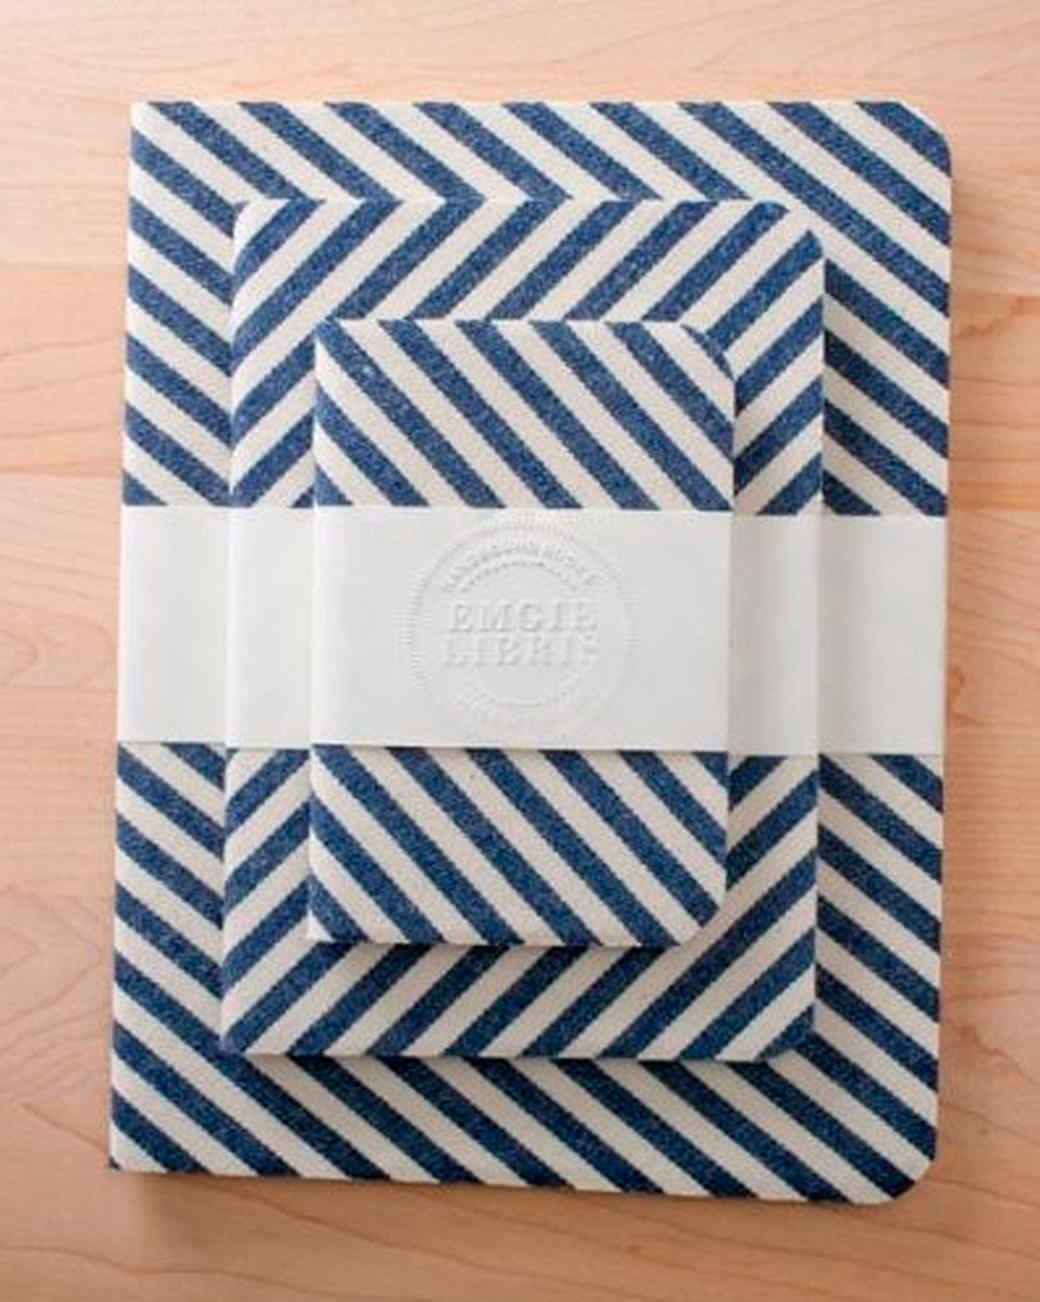 emgie-libris-journal-available-in-3-sizes-and-multiple-styles-0914.jpg